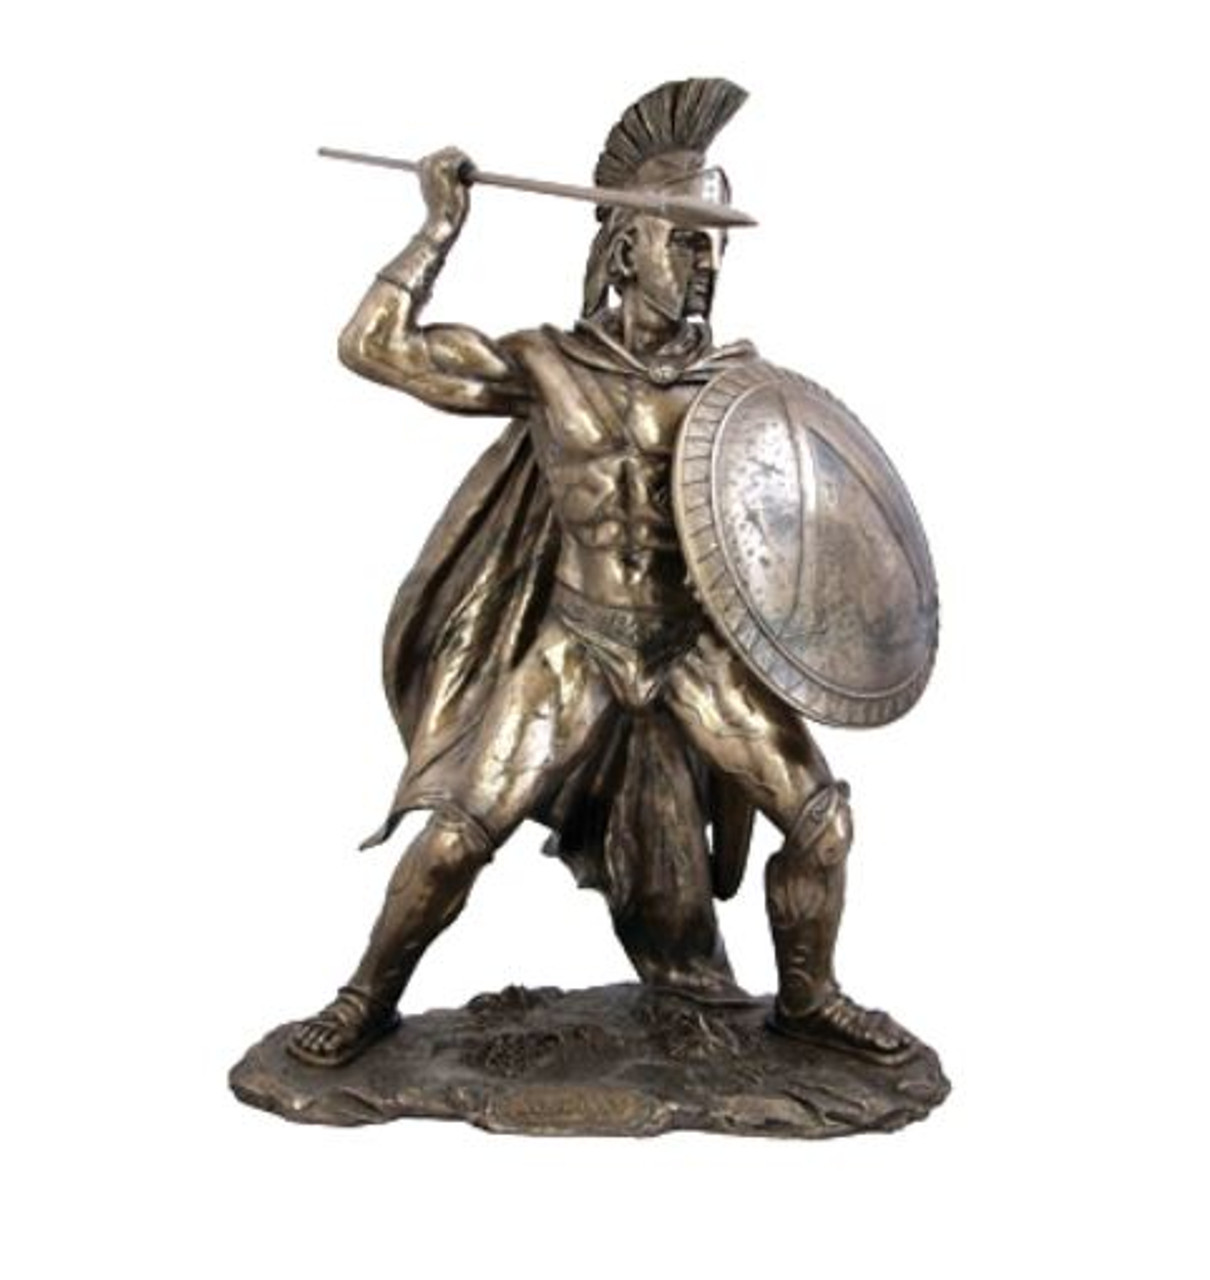 King Leonidas Spartan Warrior Statue With Spear Bronzed (Large)